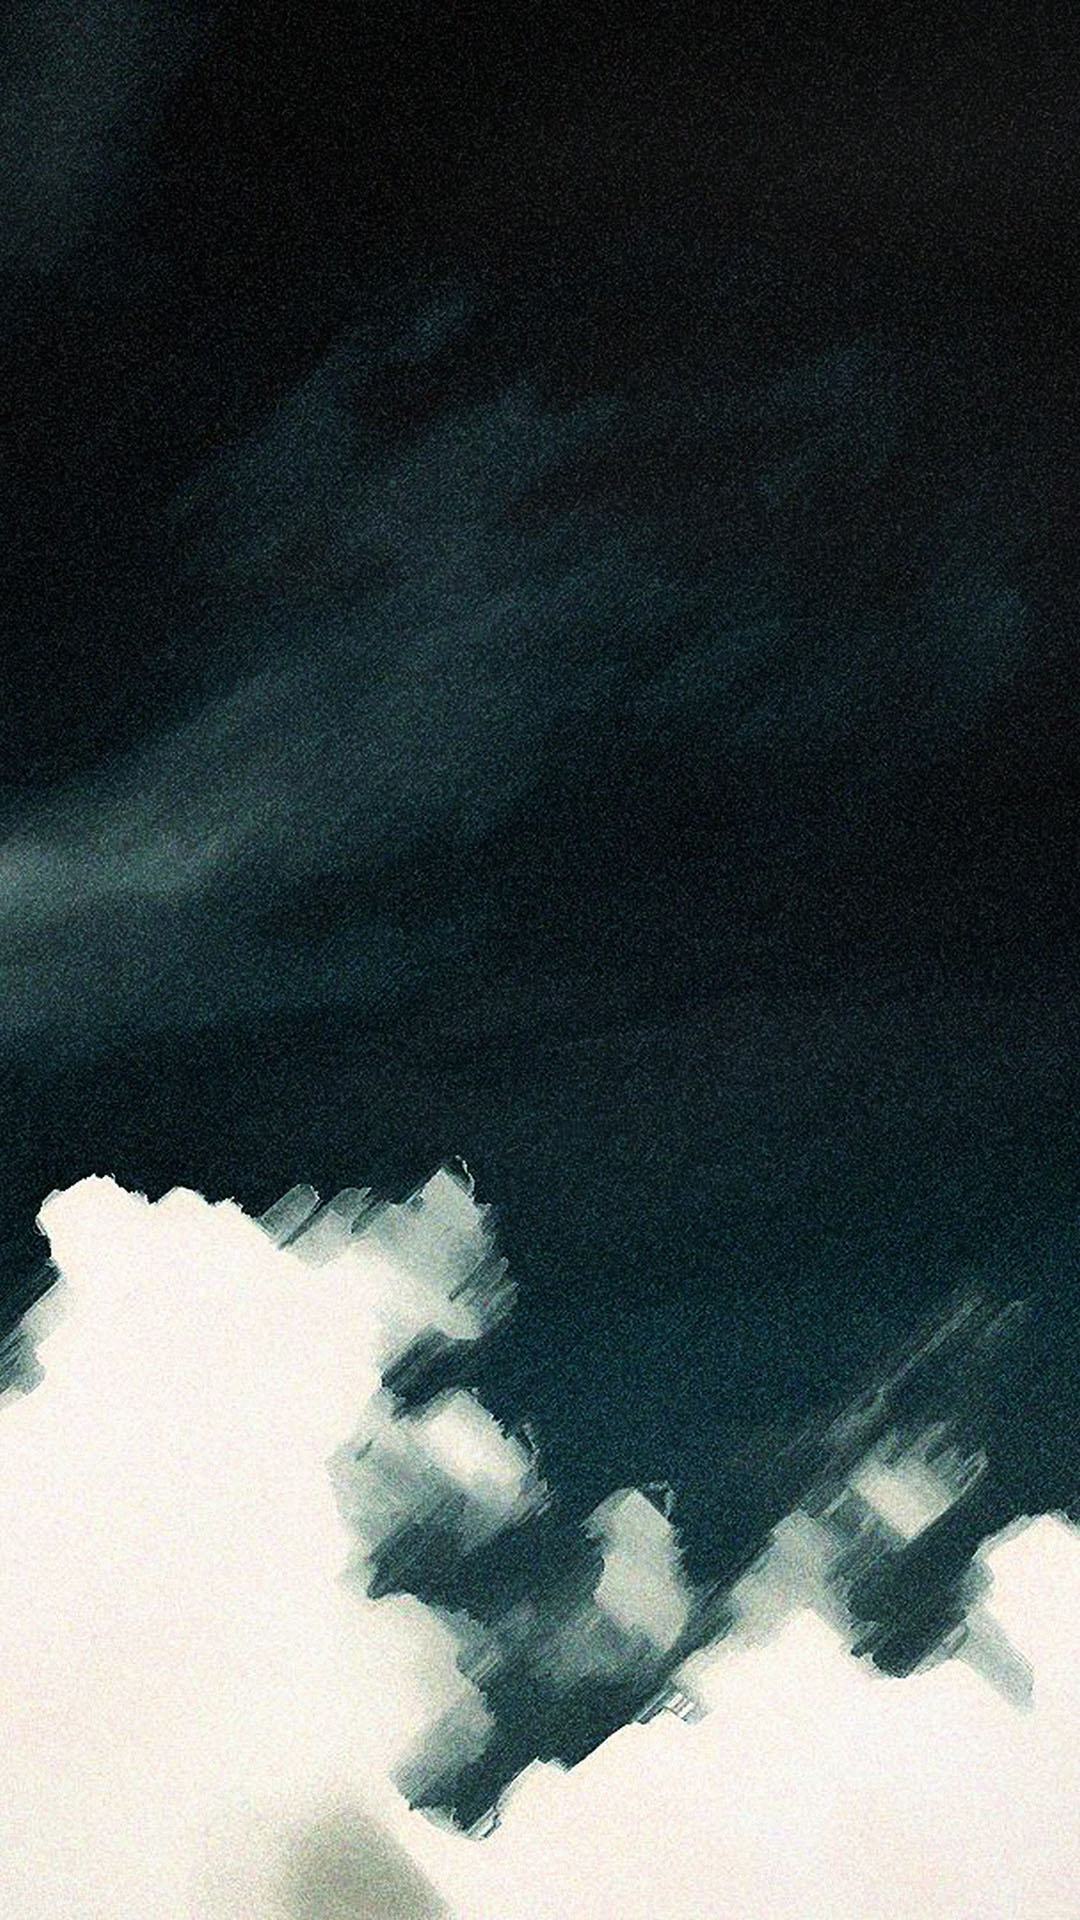 Sky Clouds Watercolor Painting Android Wallpaper - Cross Before Me The World Behind Me , HD Wallpaper & Backgrounds